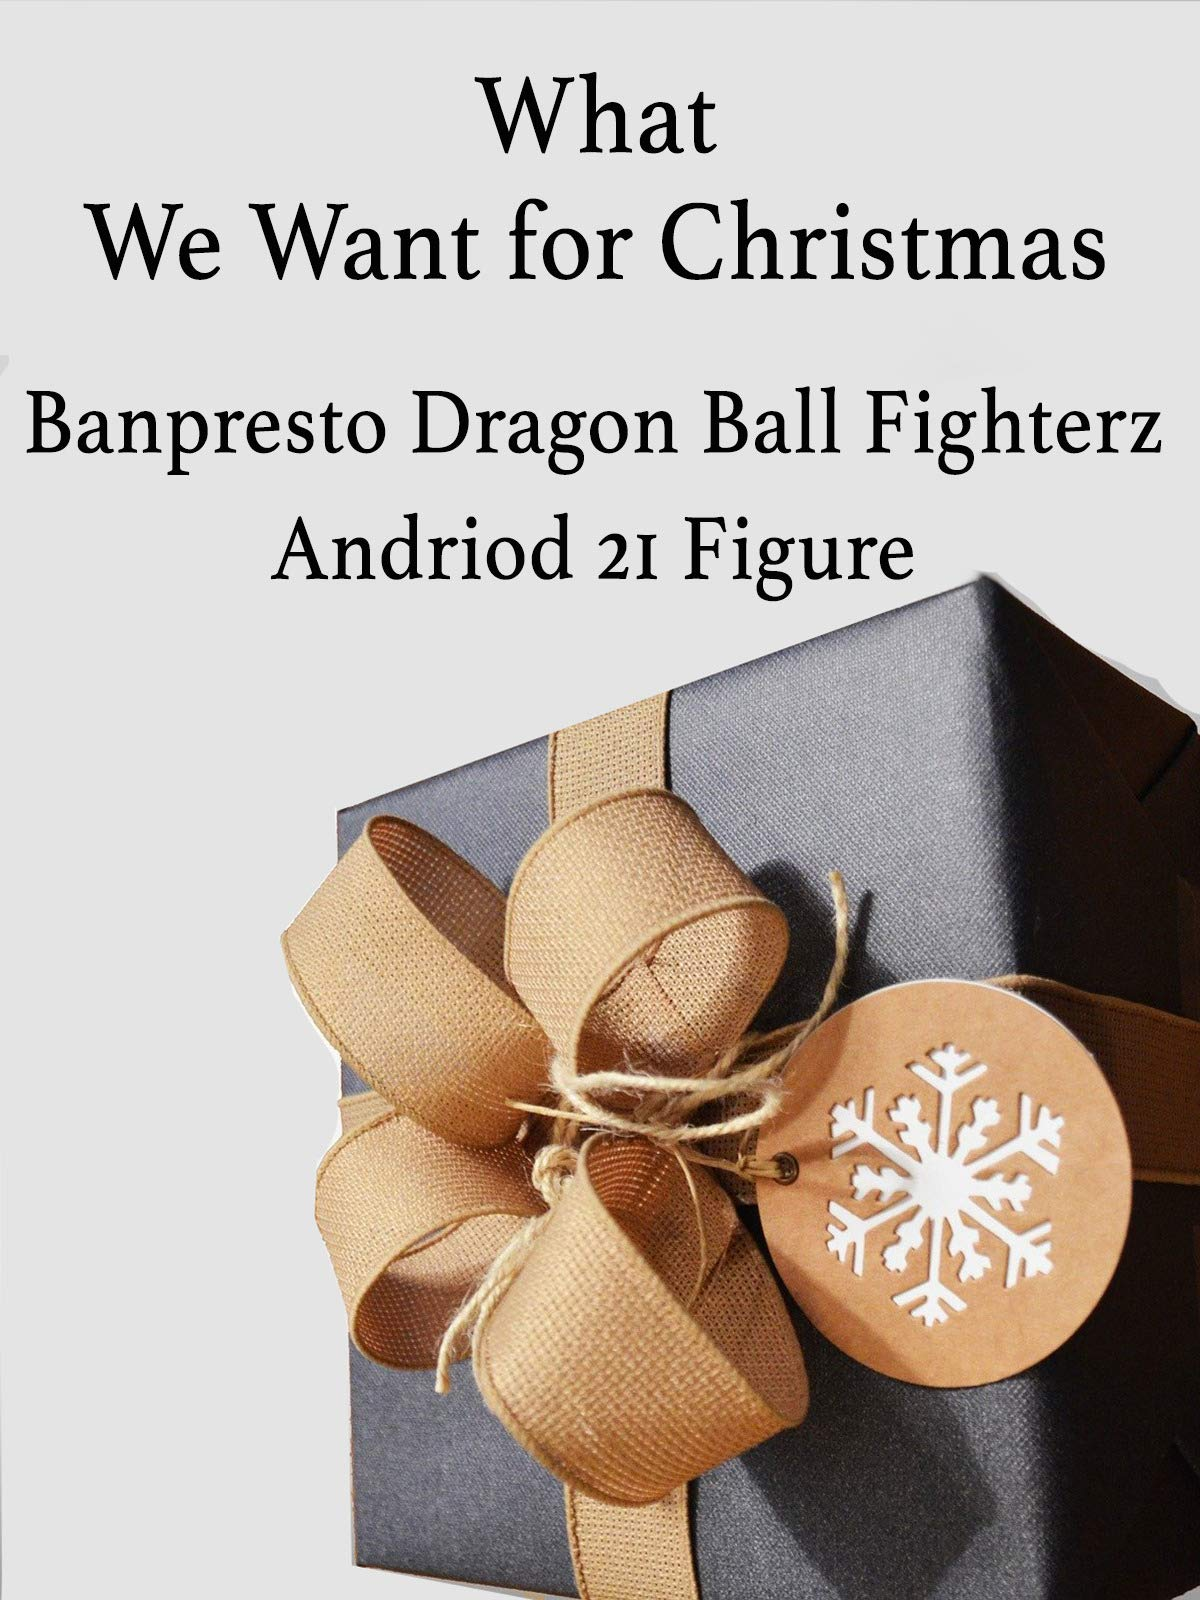 What We Want for Christmas Banpresto Dragon Ball FighterZ Android 21 Figure